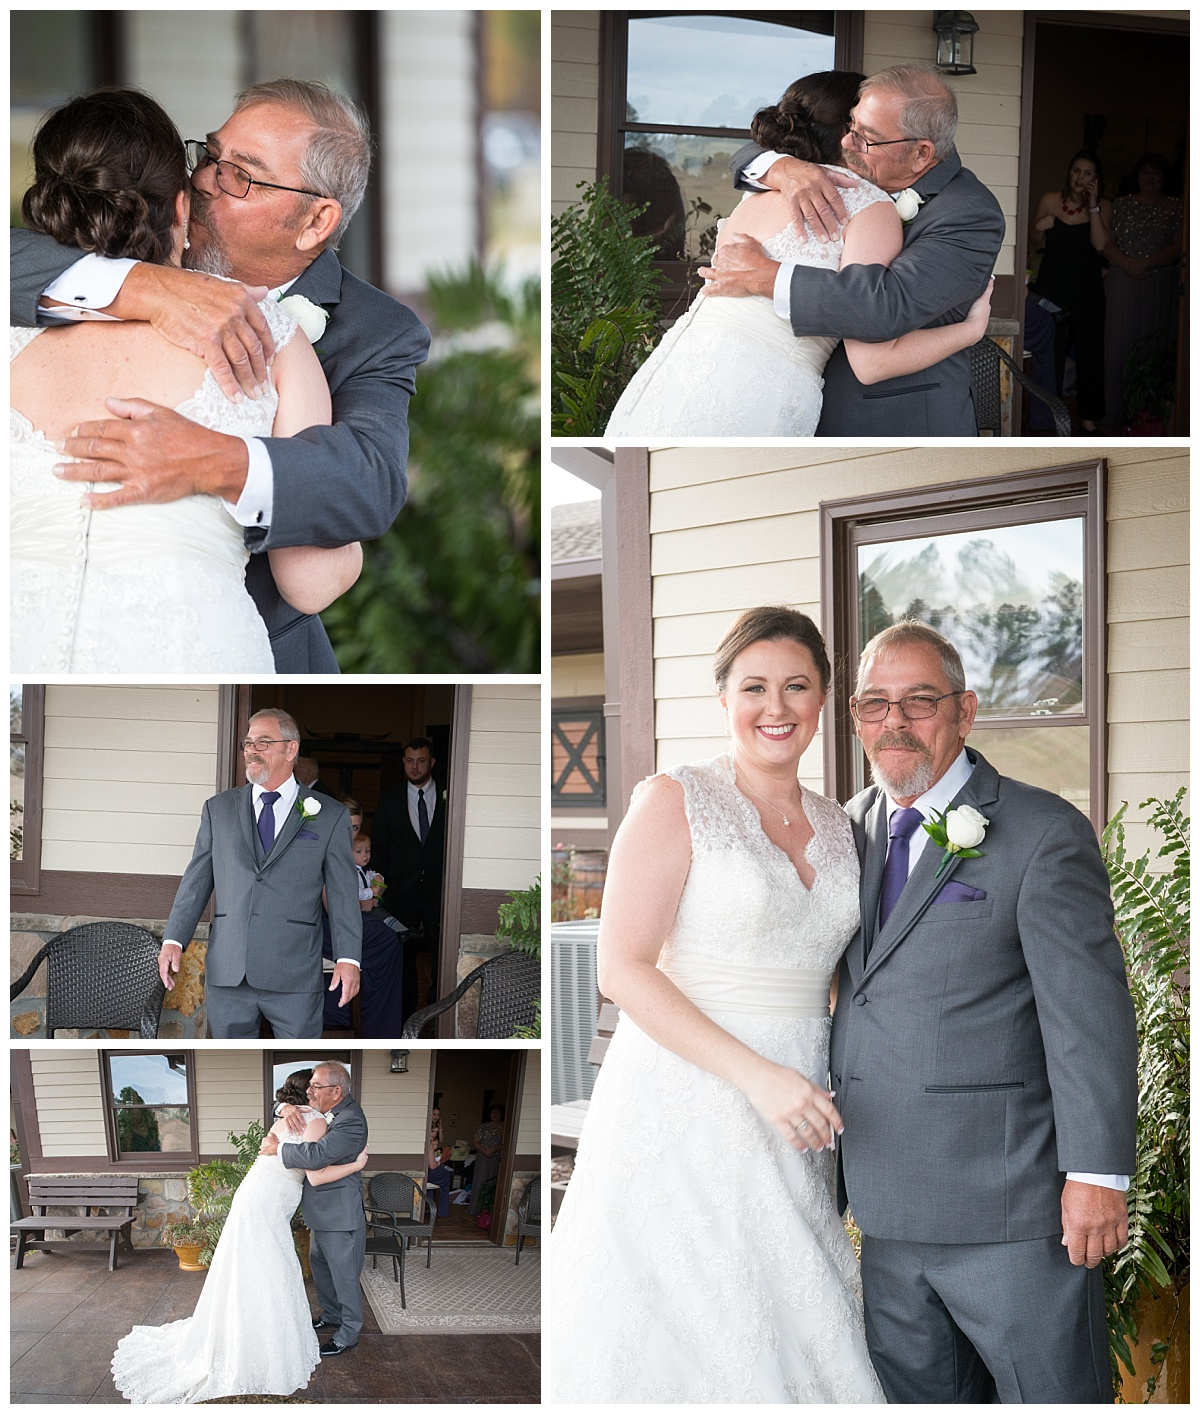 Brides first look with Dad